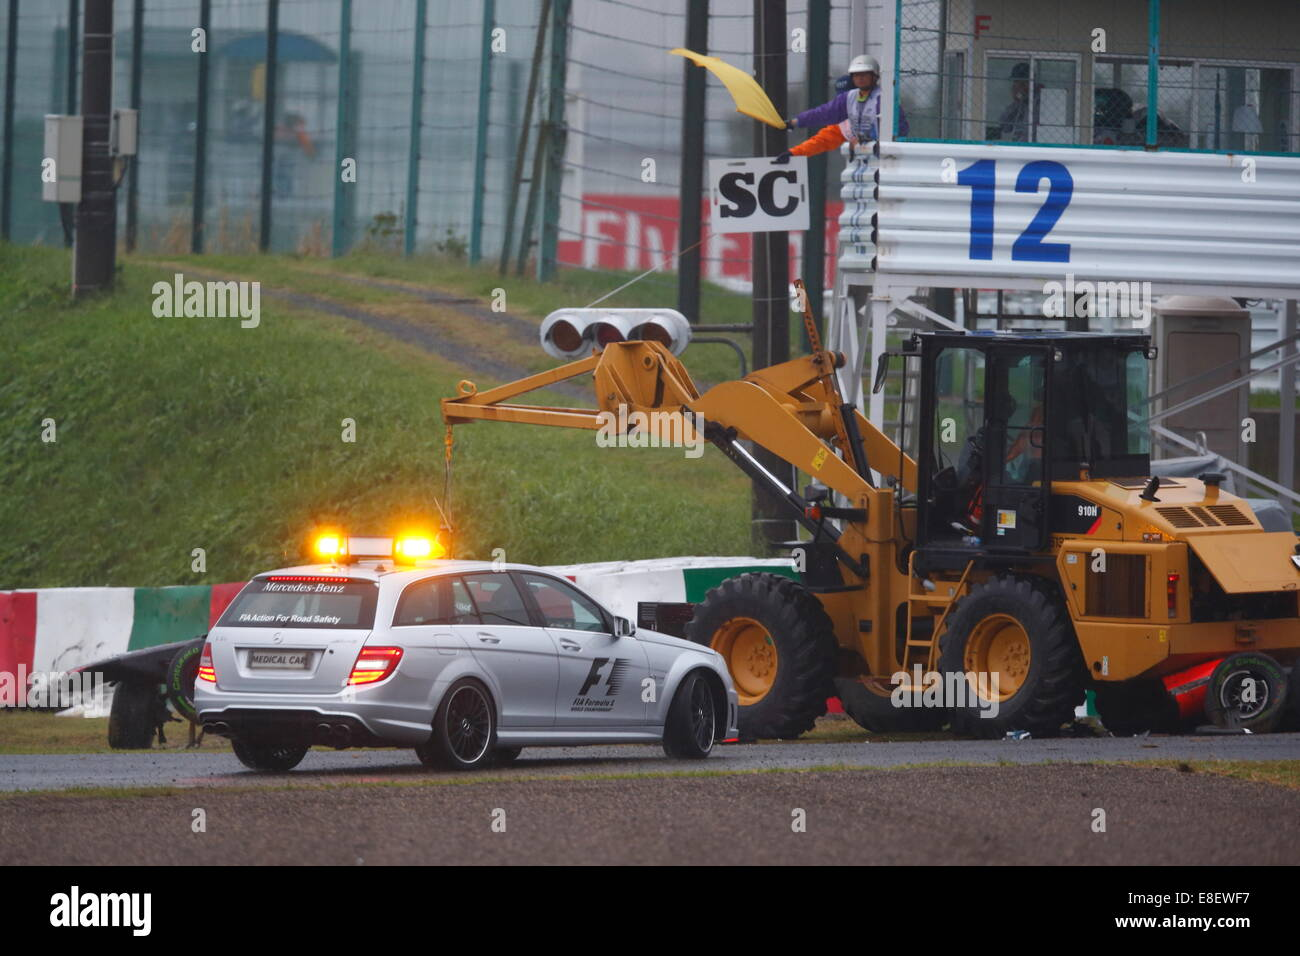 accident of jules bianchi in suzuka the car slided of the track on